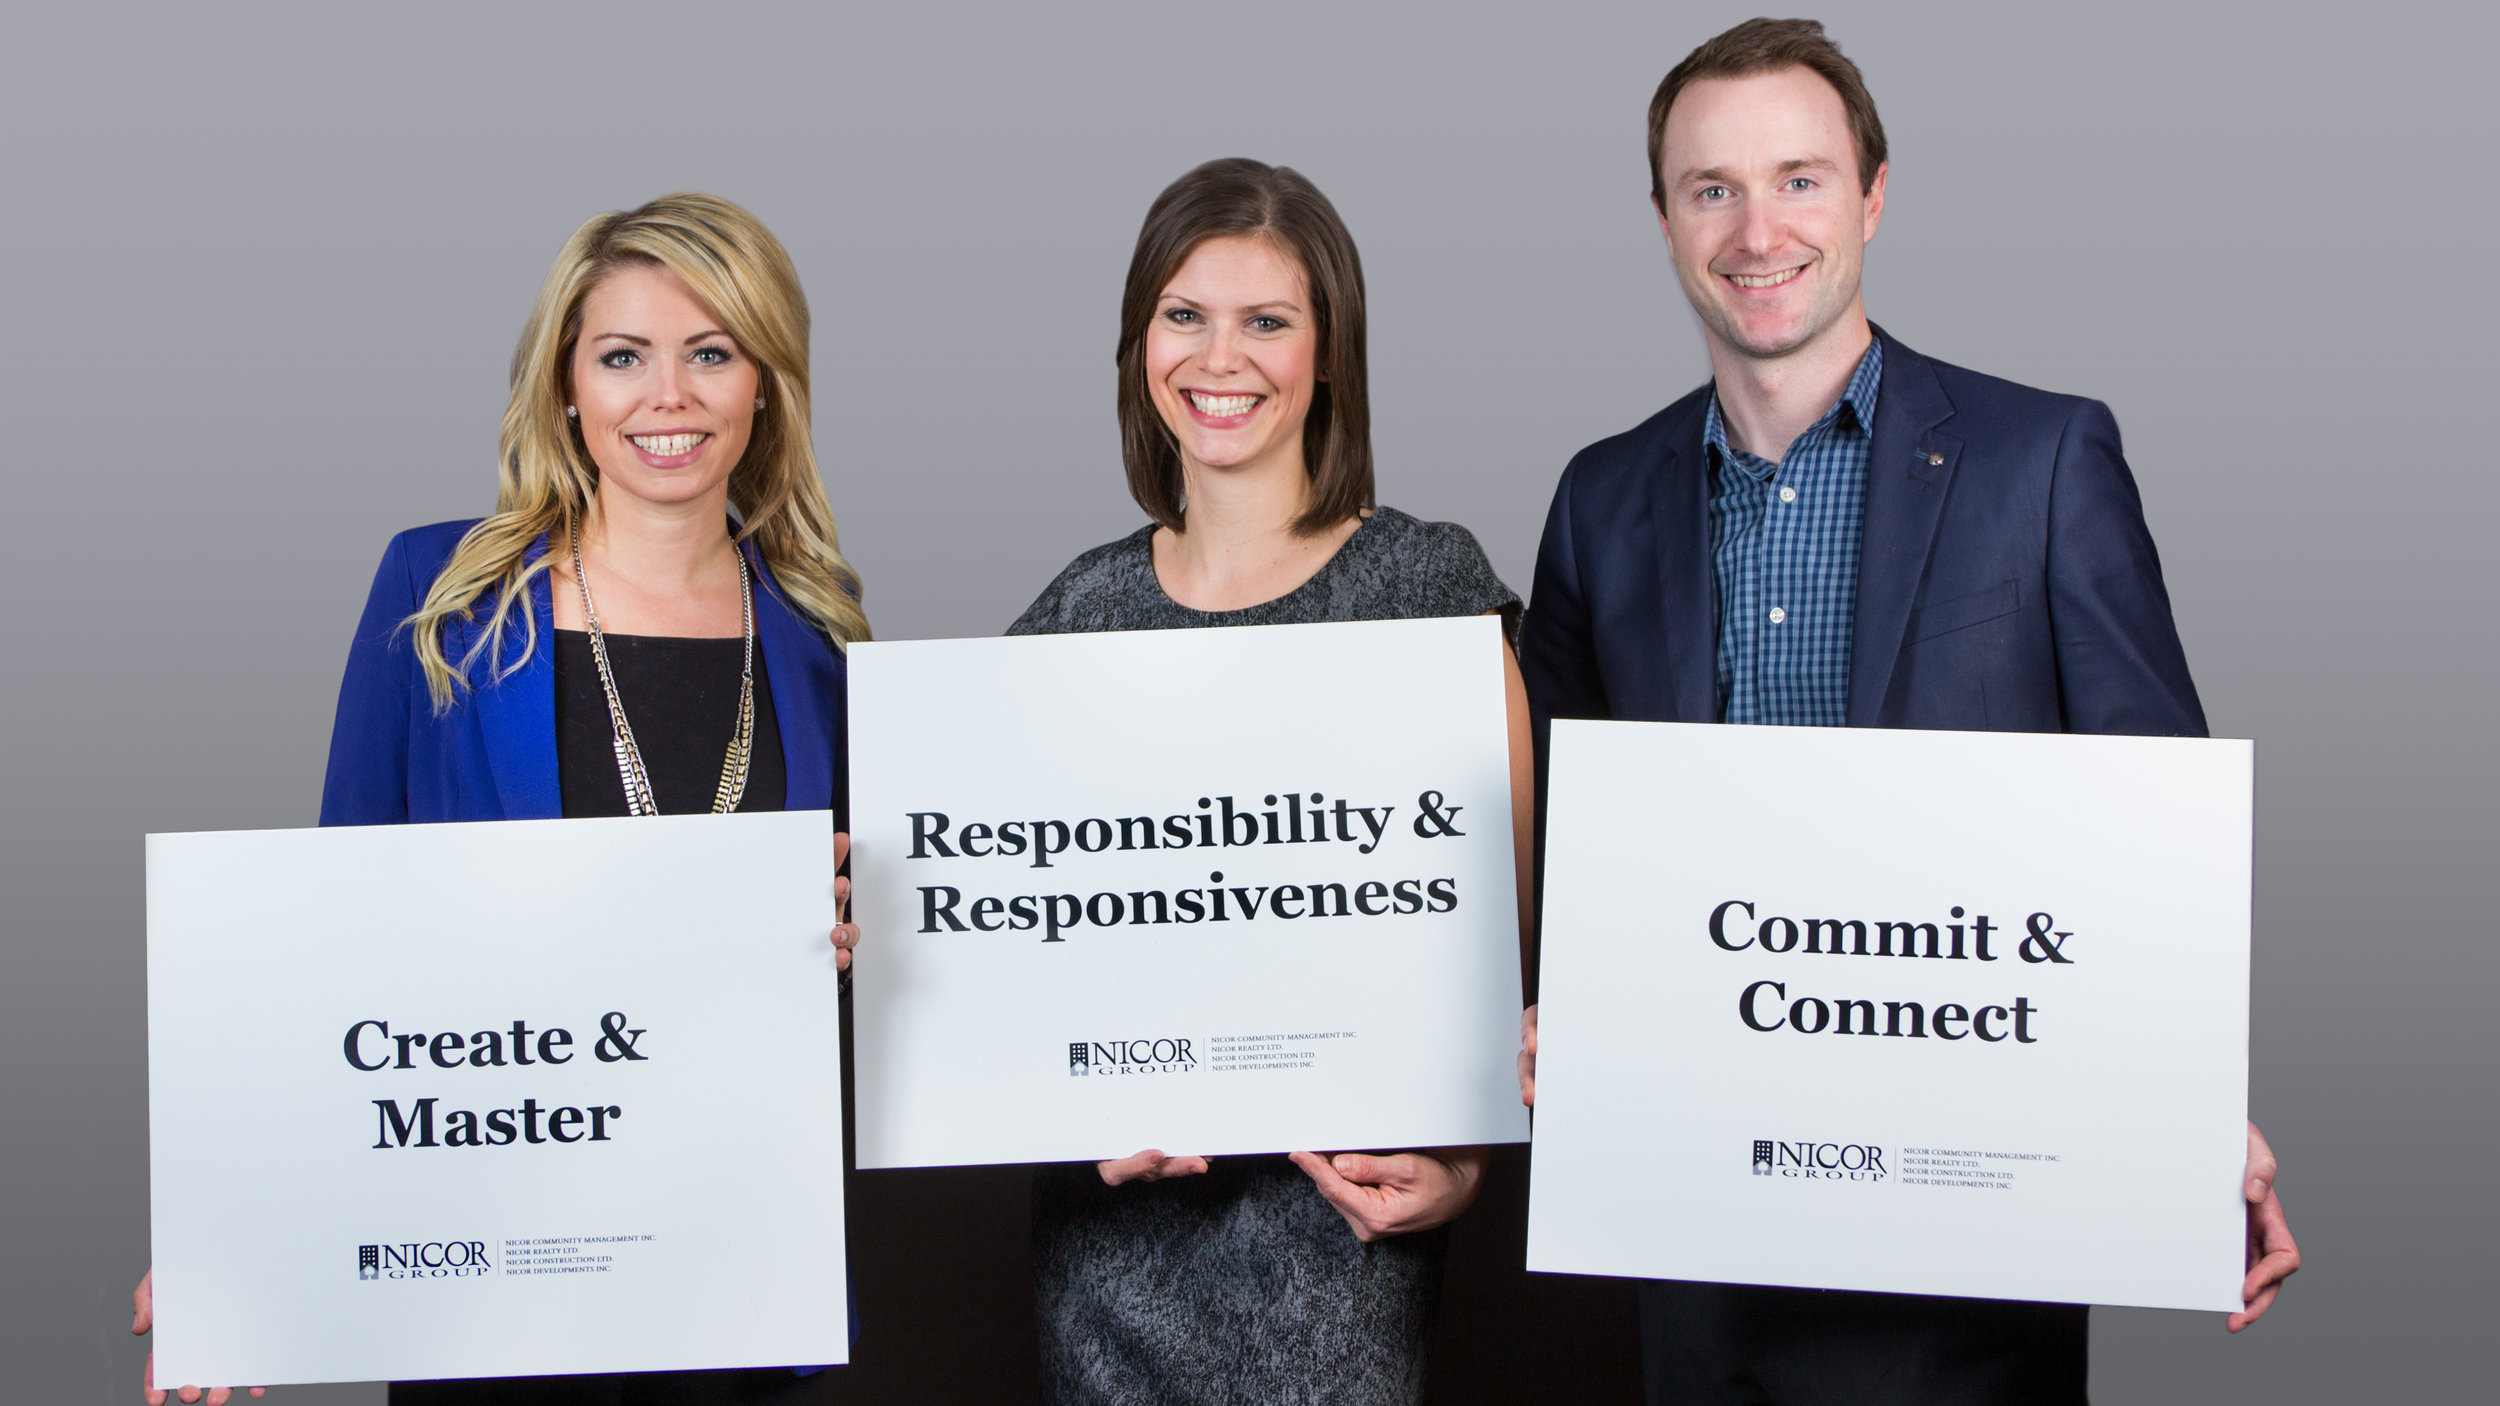 Nicor Group Company Values, displayed by Board Member Courtney Keith, COO Lindsay Torrie, and CEO Dan Torrie. (2017)